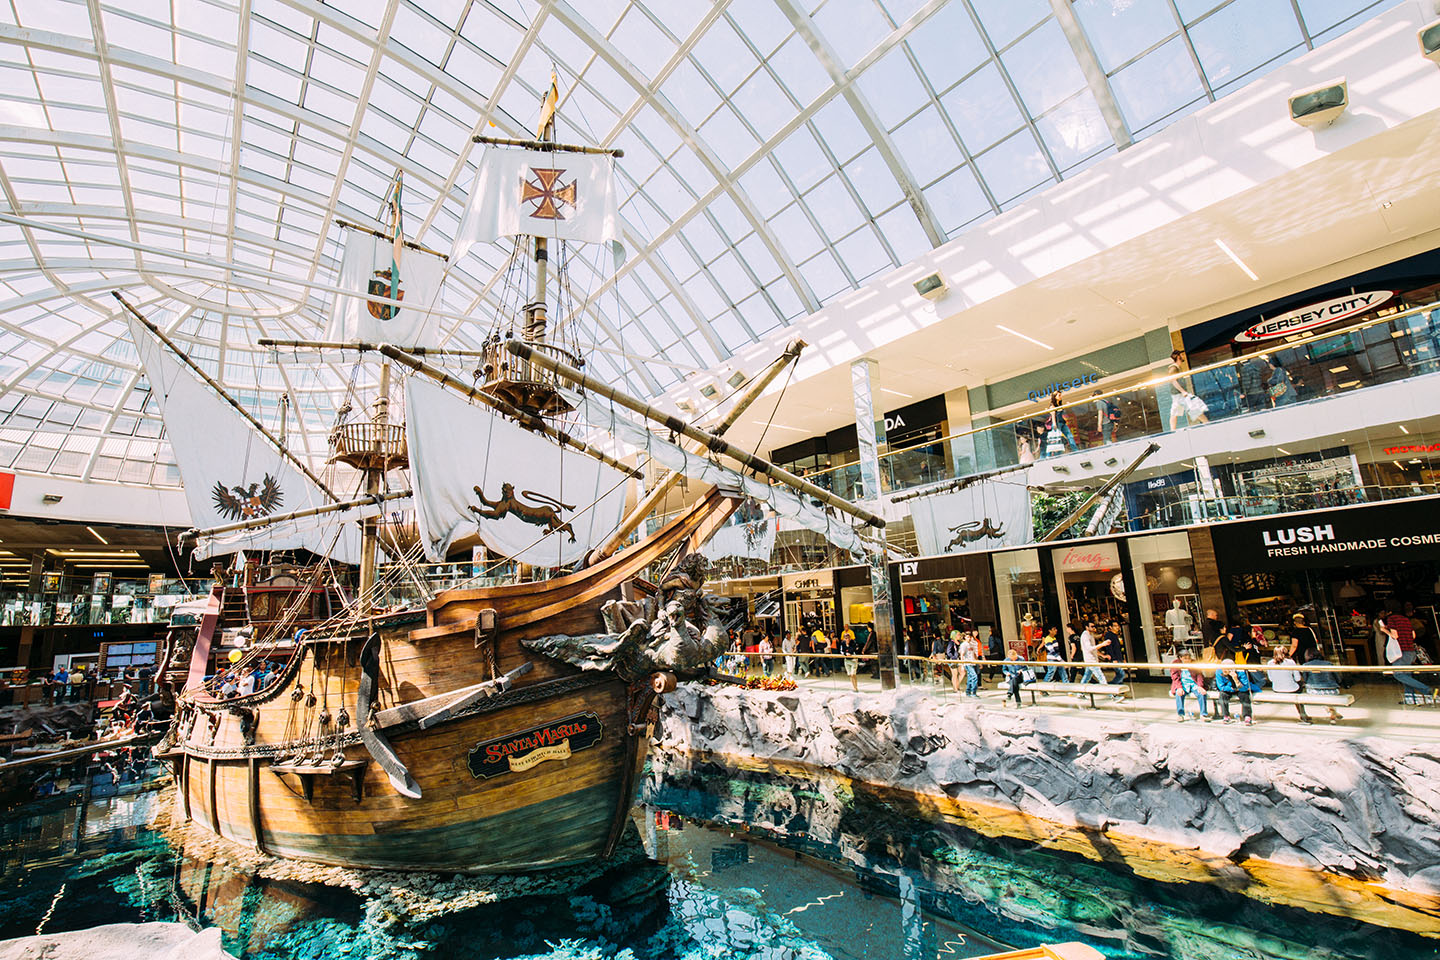 Pirate ship in the middle of West Edmonton Mall